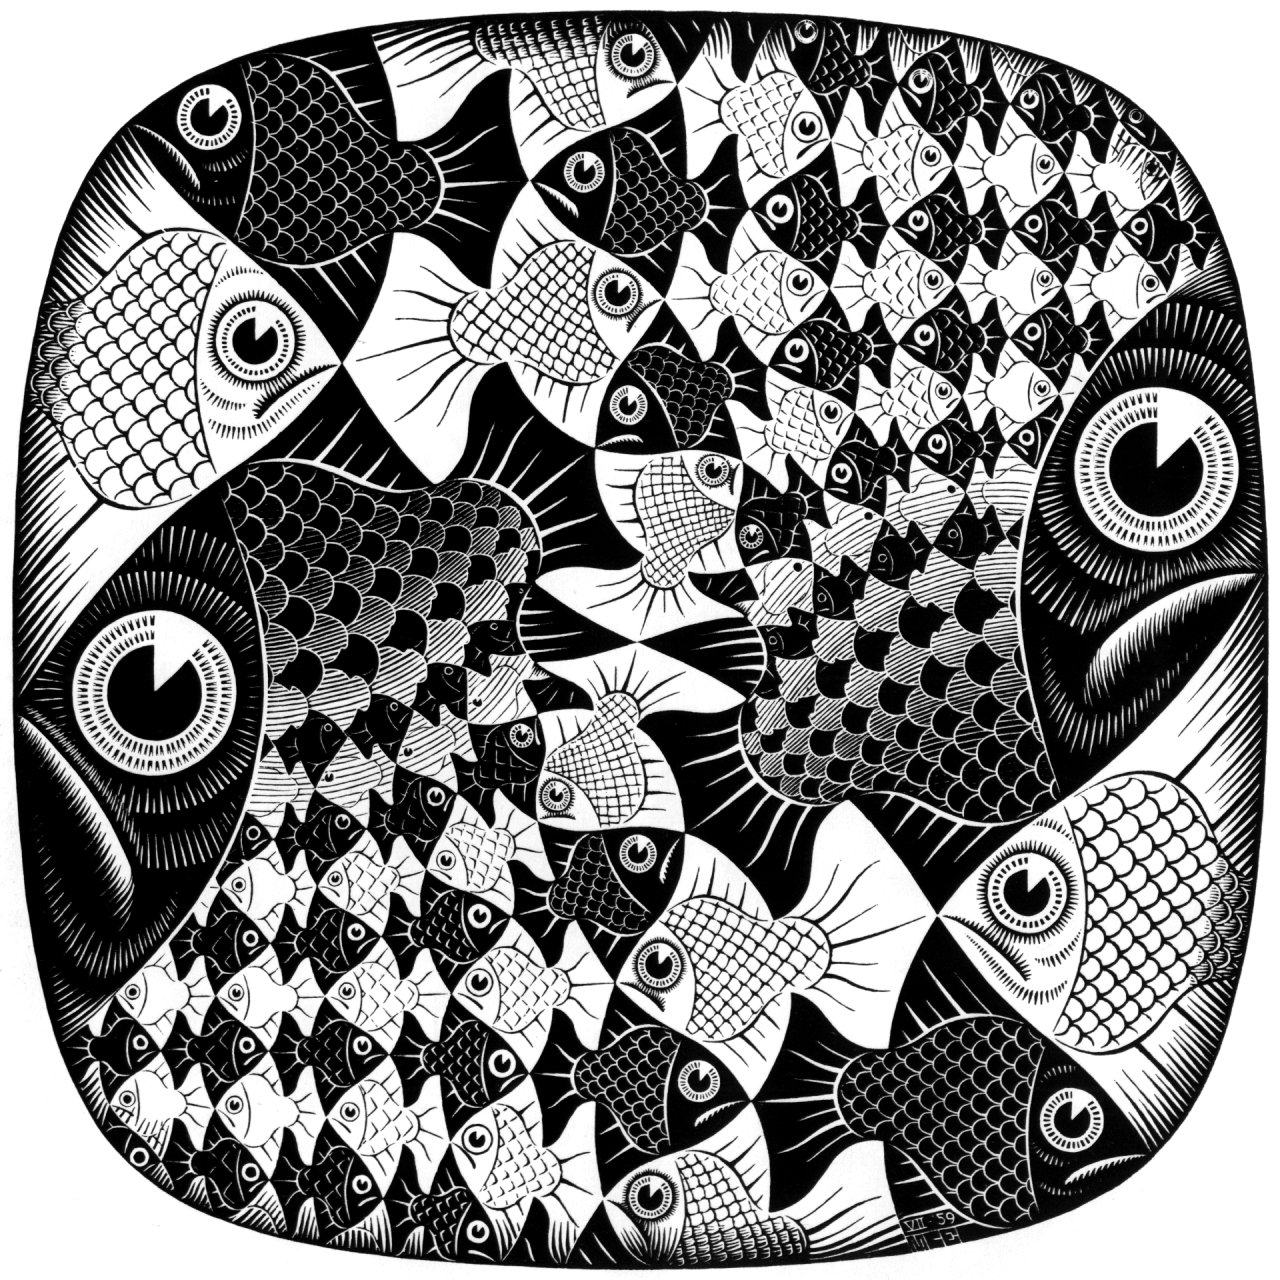 Fishes and Scales - M.C. Escher - WikiArt.org - encyclopedia of visual ...: www.wikiart.org/en/m-c-escher/fishes-and-scales